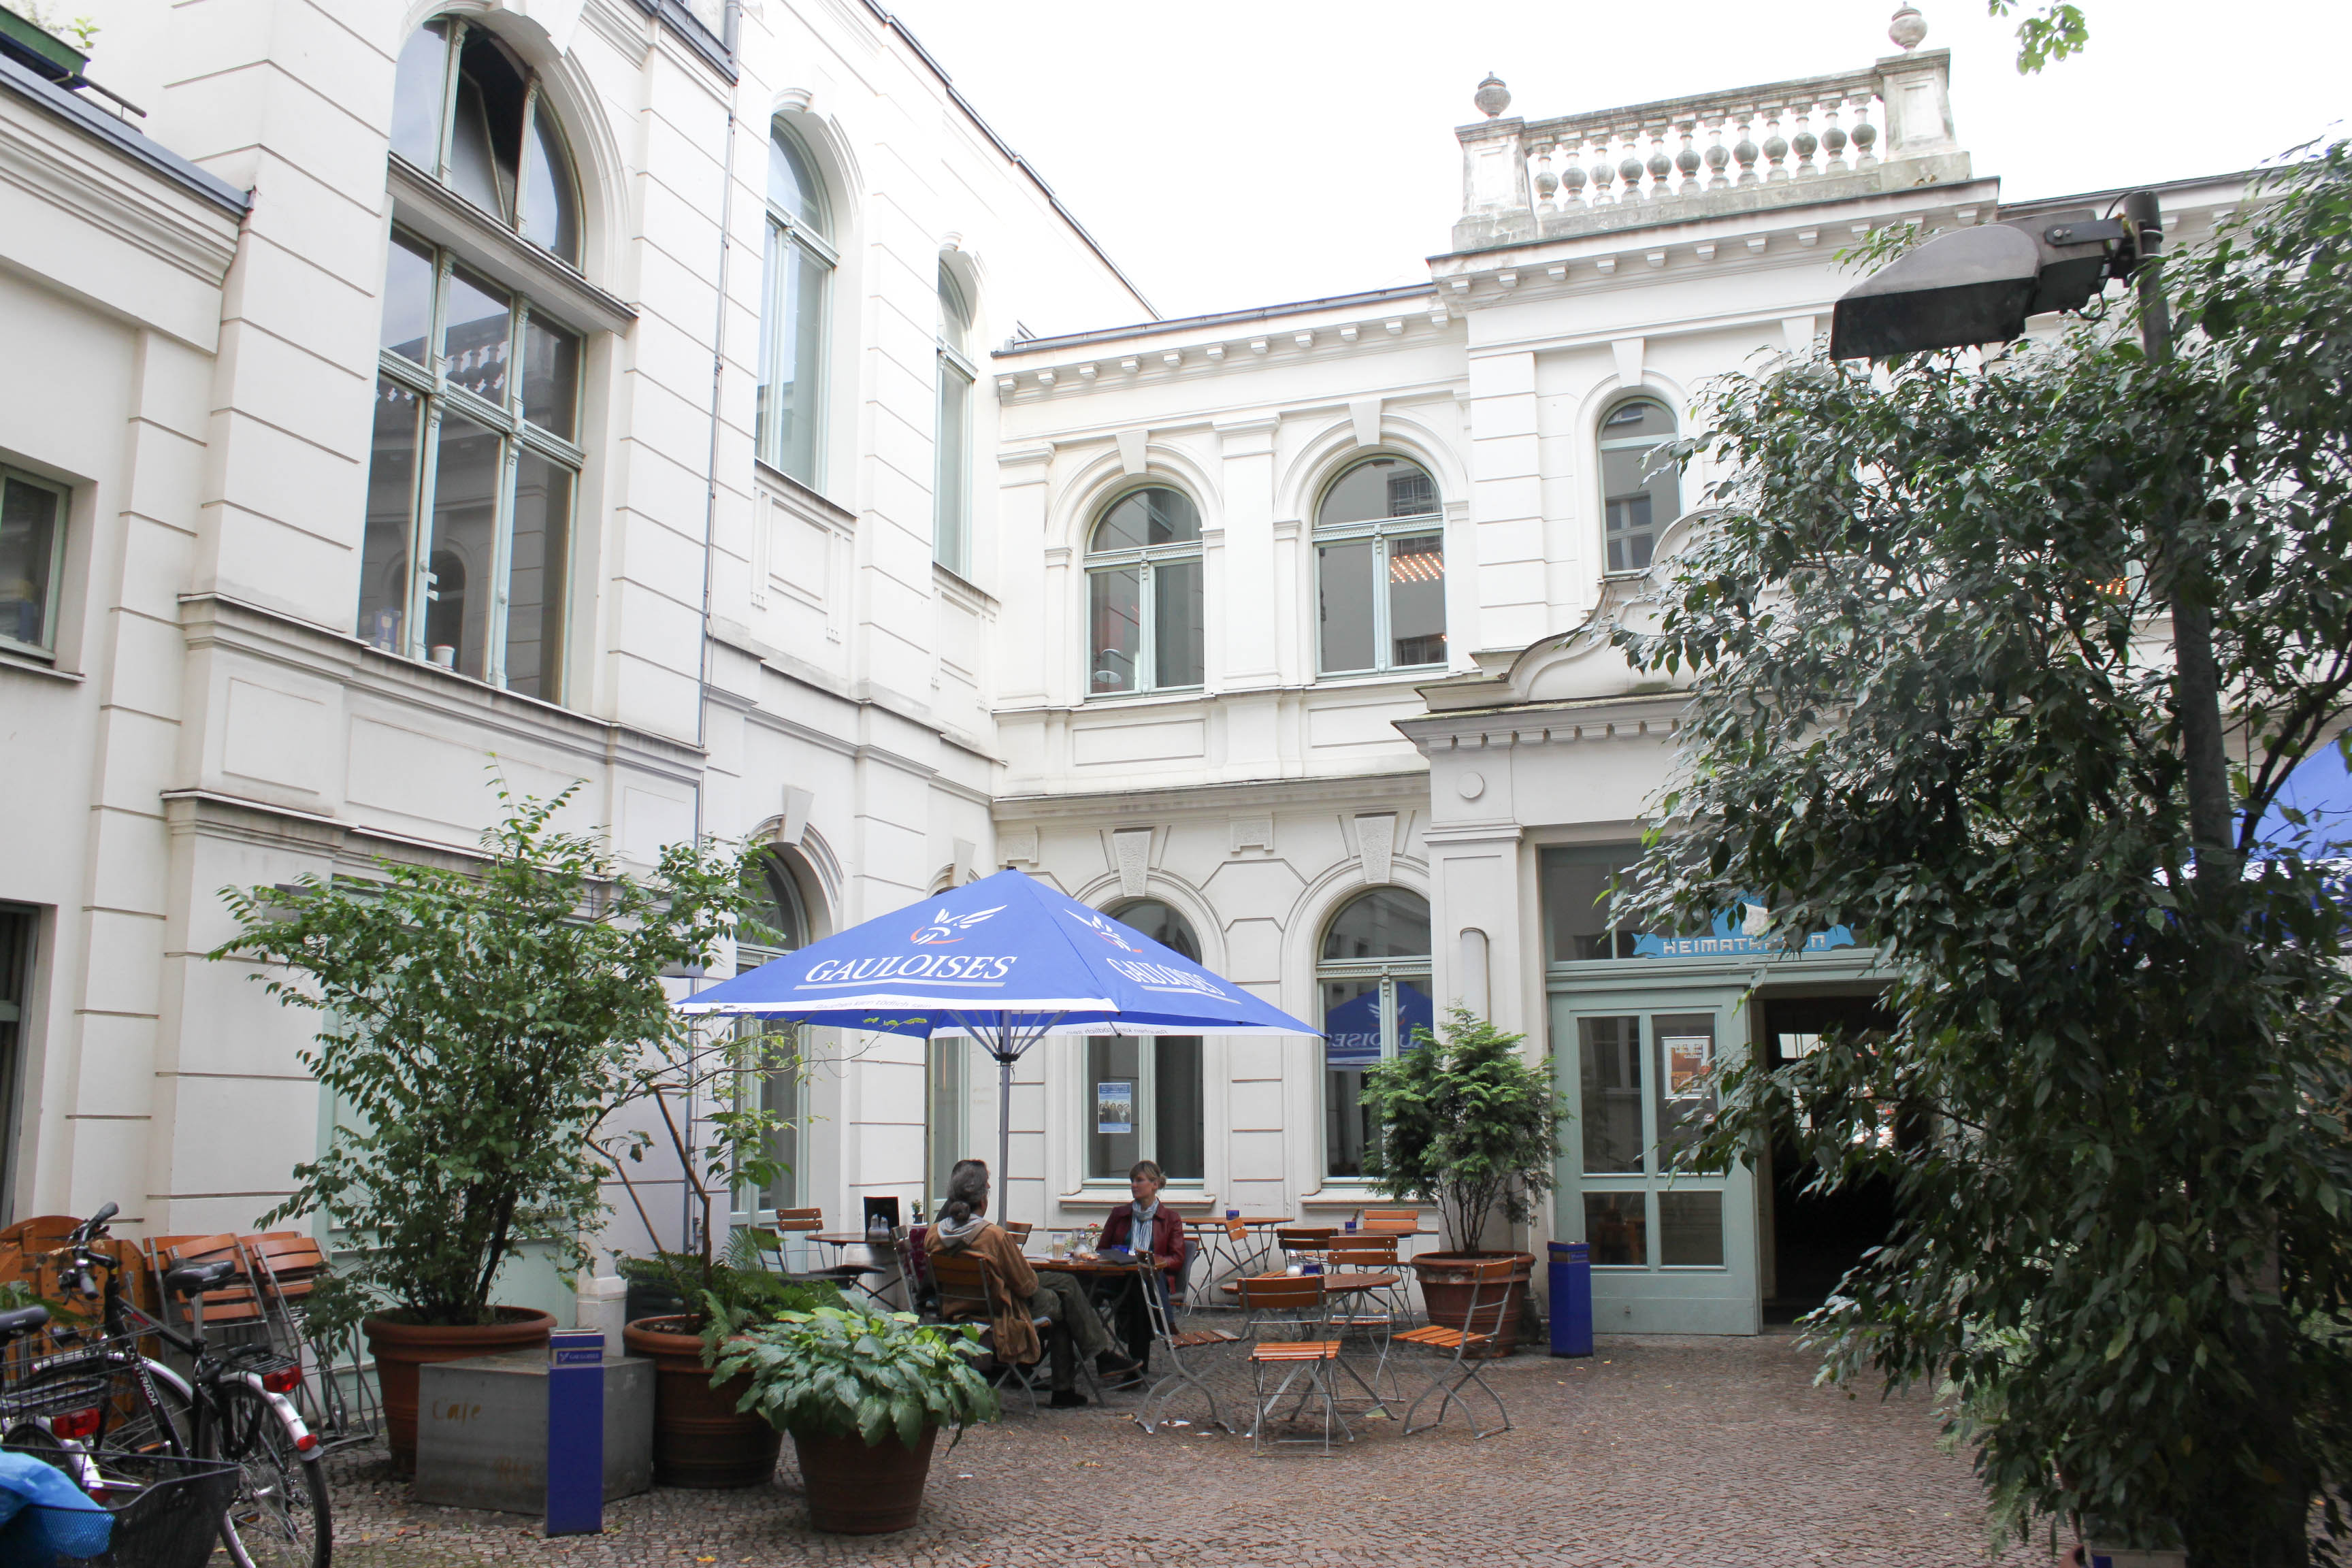 Cafe rix in neukölln is housed in a building which once acted as a ballroom it was restored and transformed into a cafe in the 1980s yet the idea of old